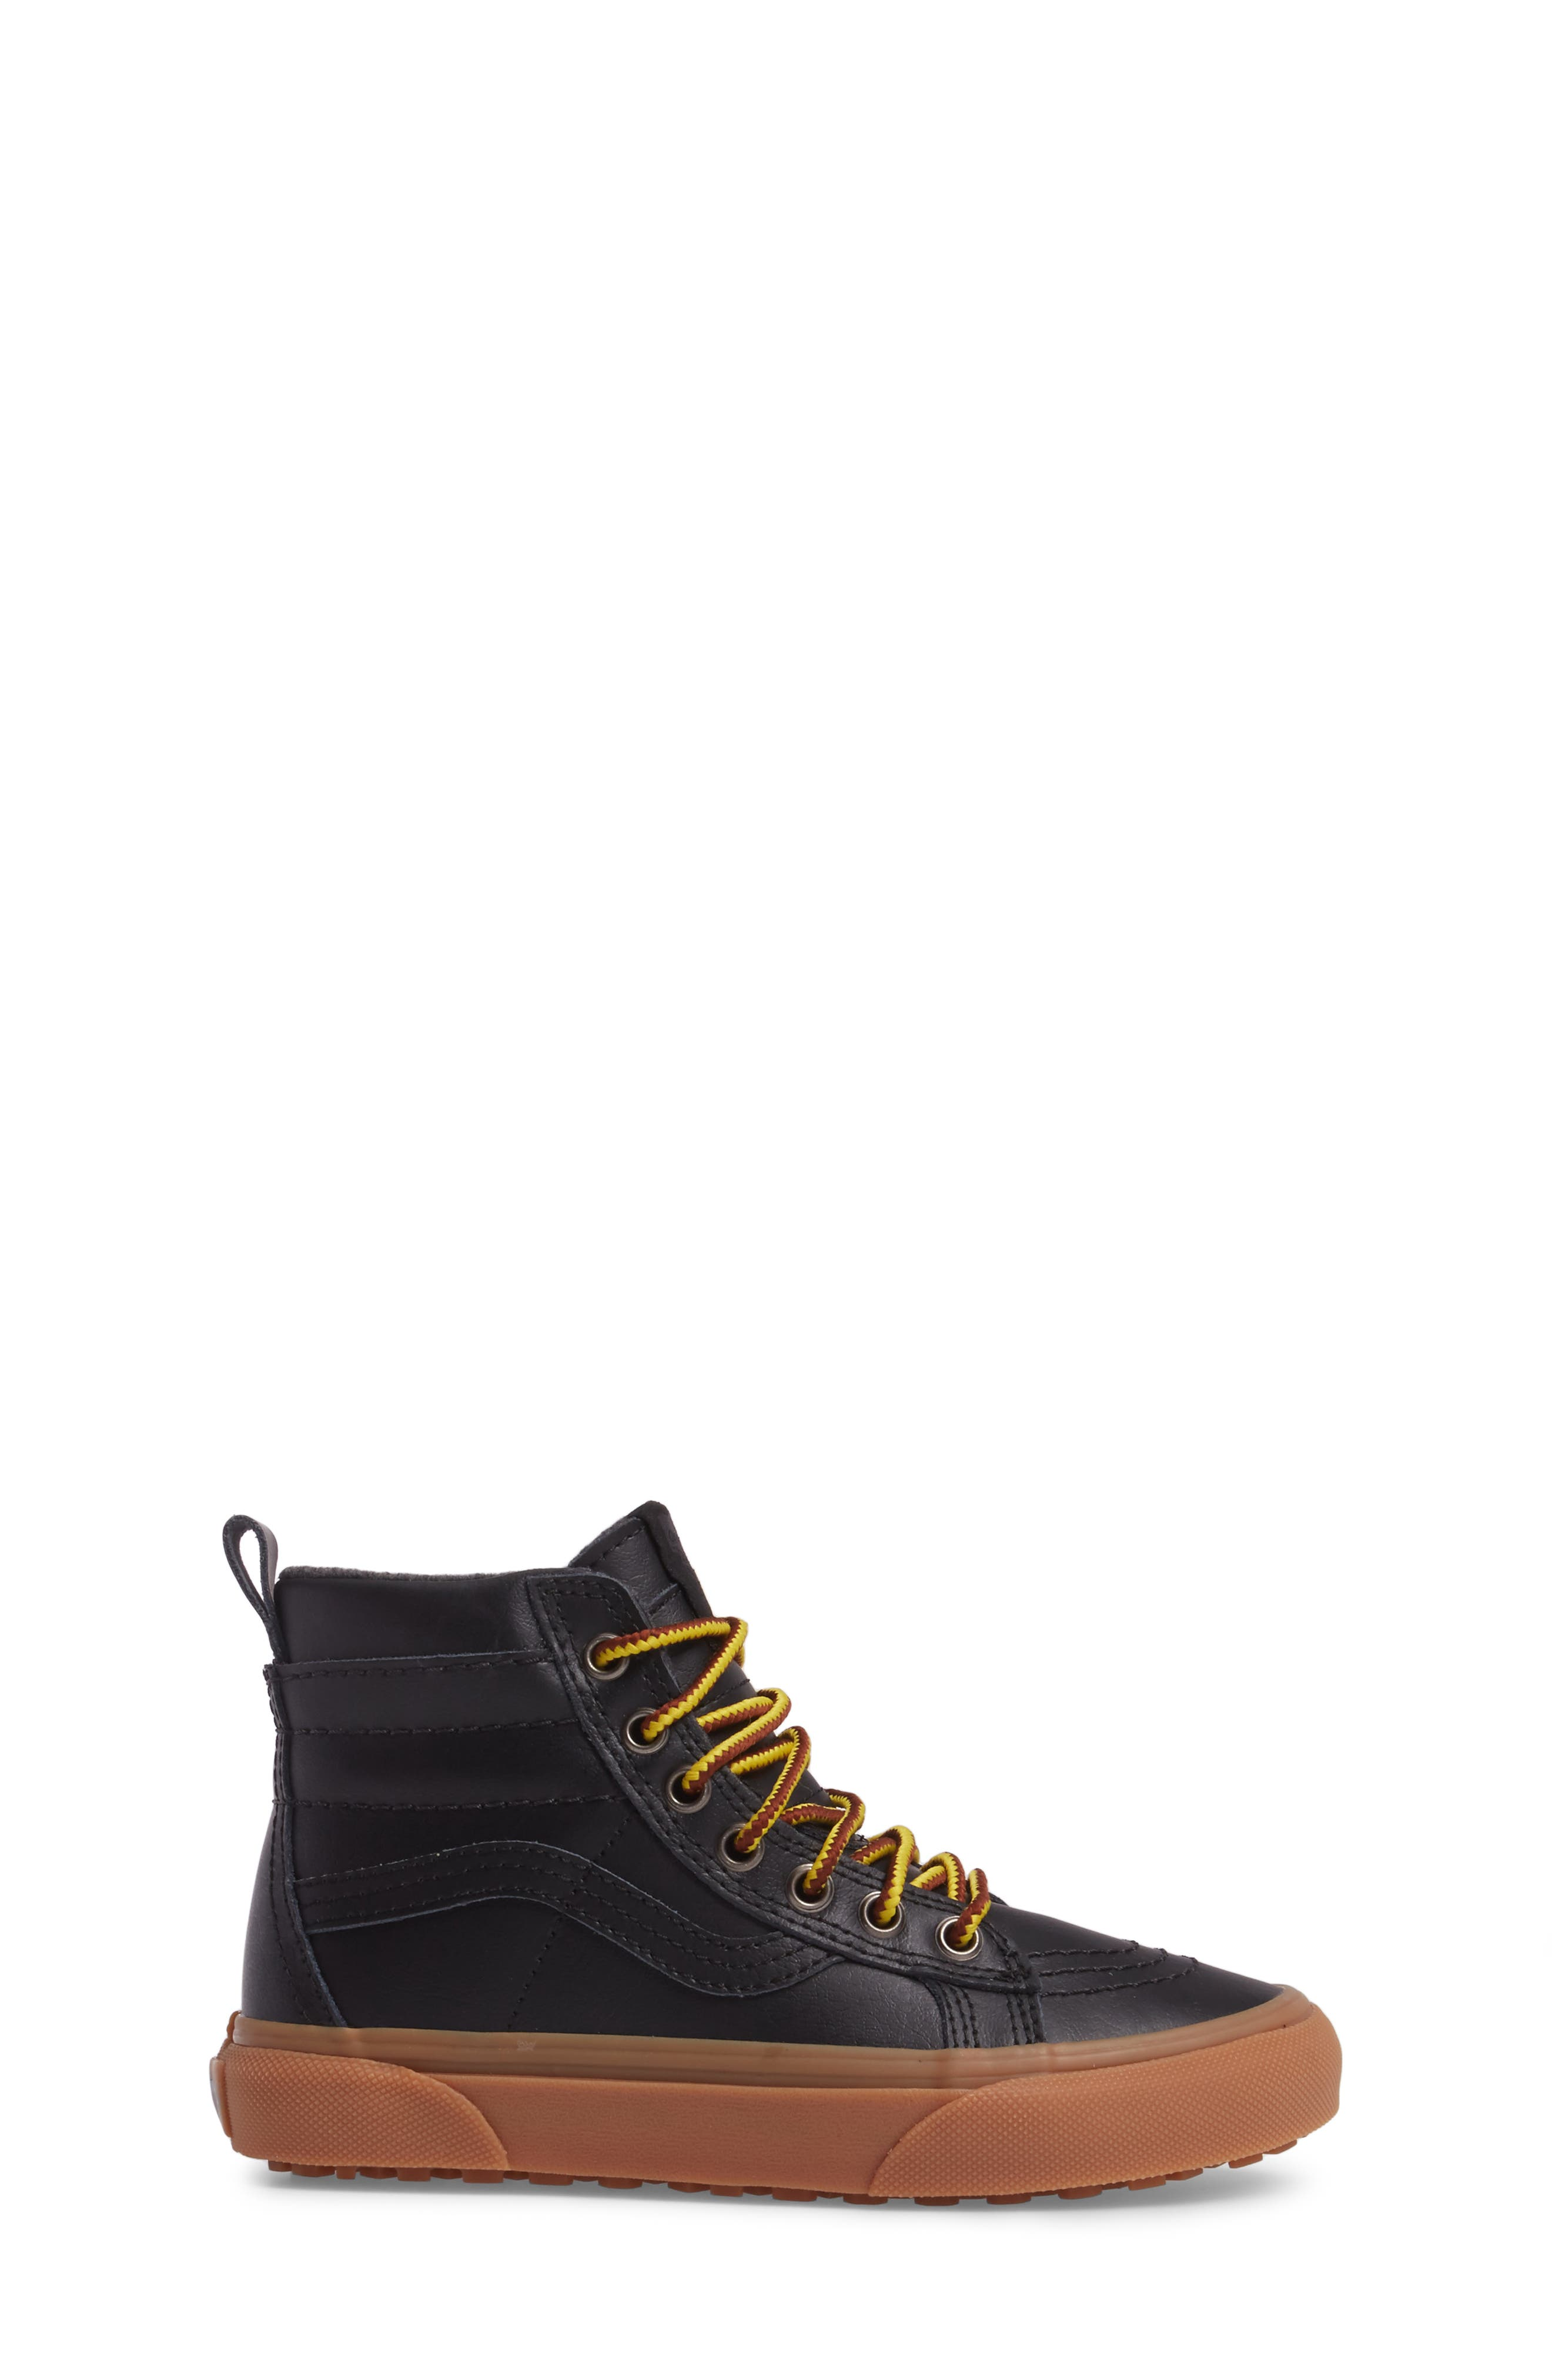 SK8-Hi Sneaker,                             Alternate thumbnail 20, color,